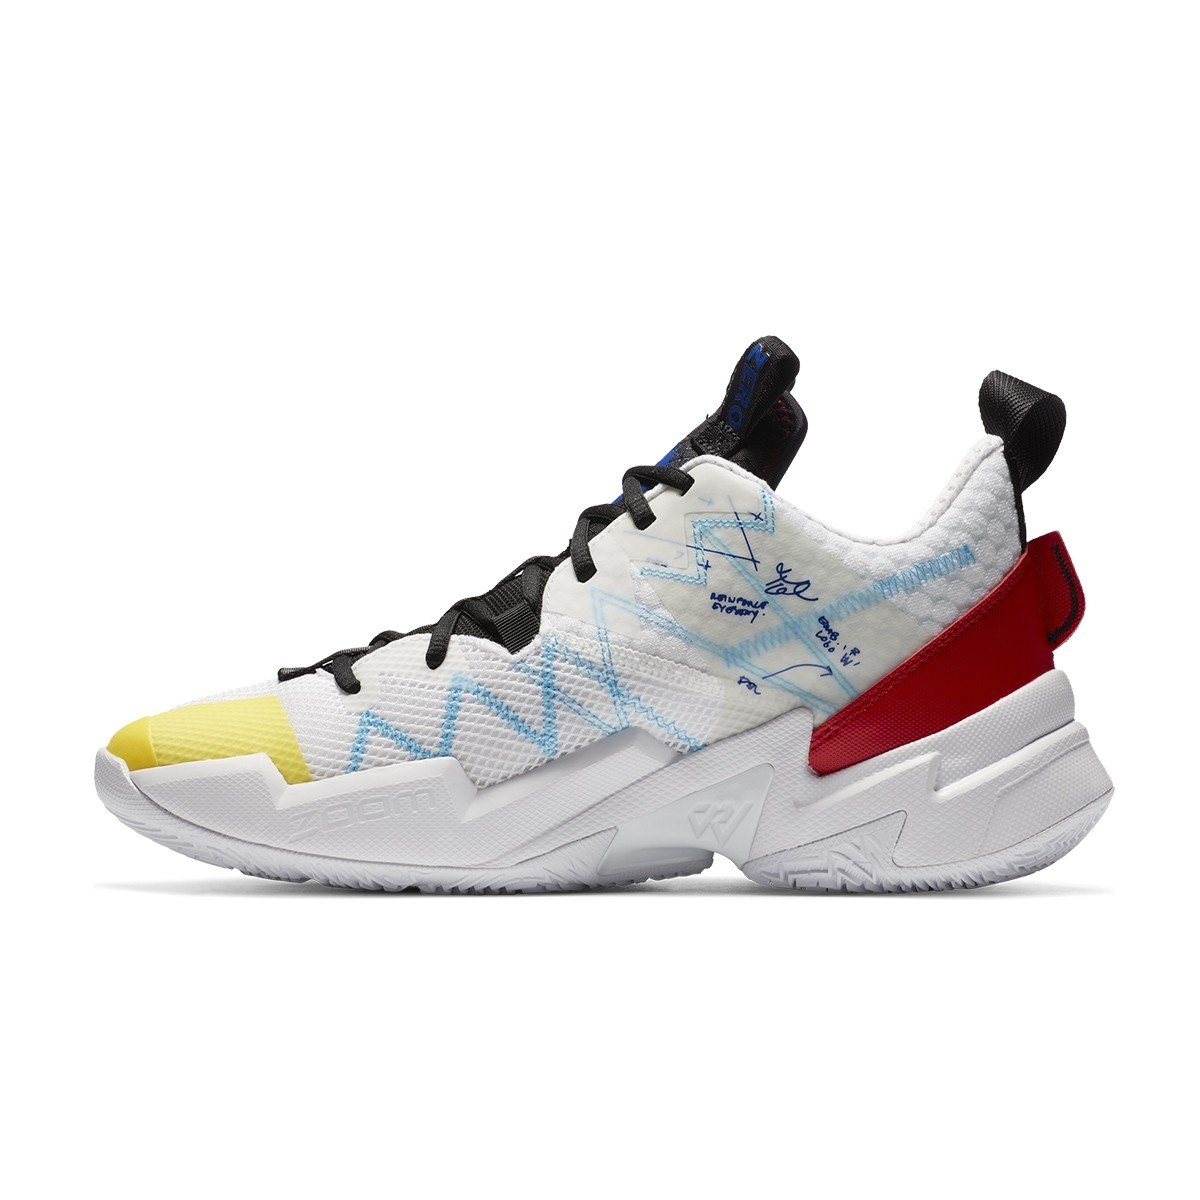 Jordan Why Not Zer0.3 SE 'Primary Colors'-CK6611-100